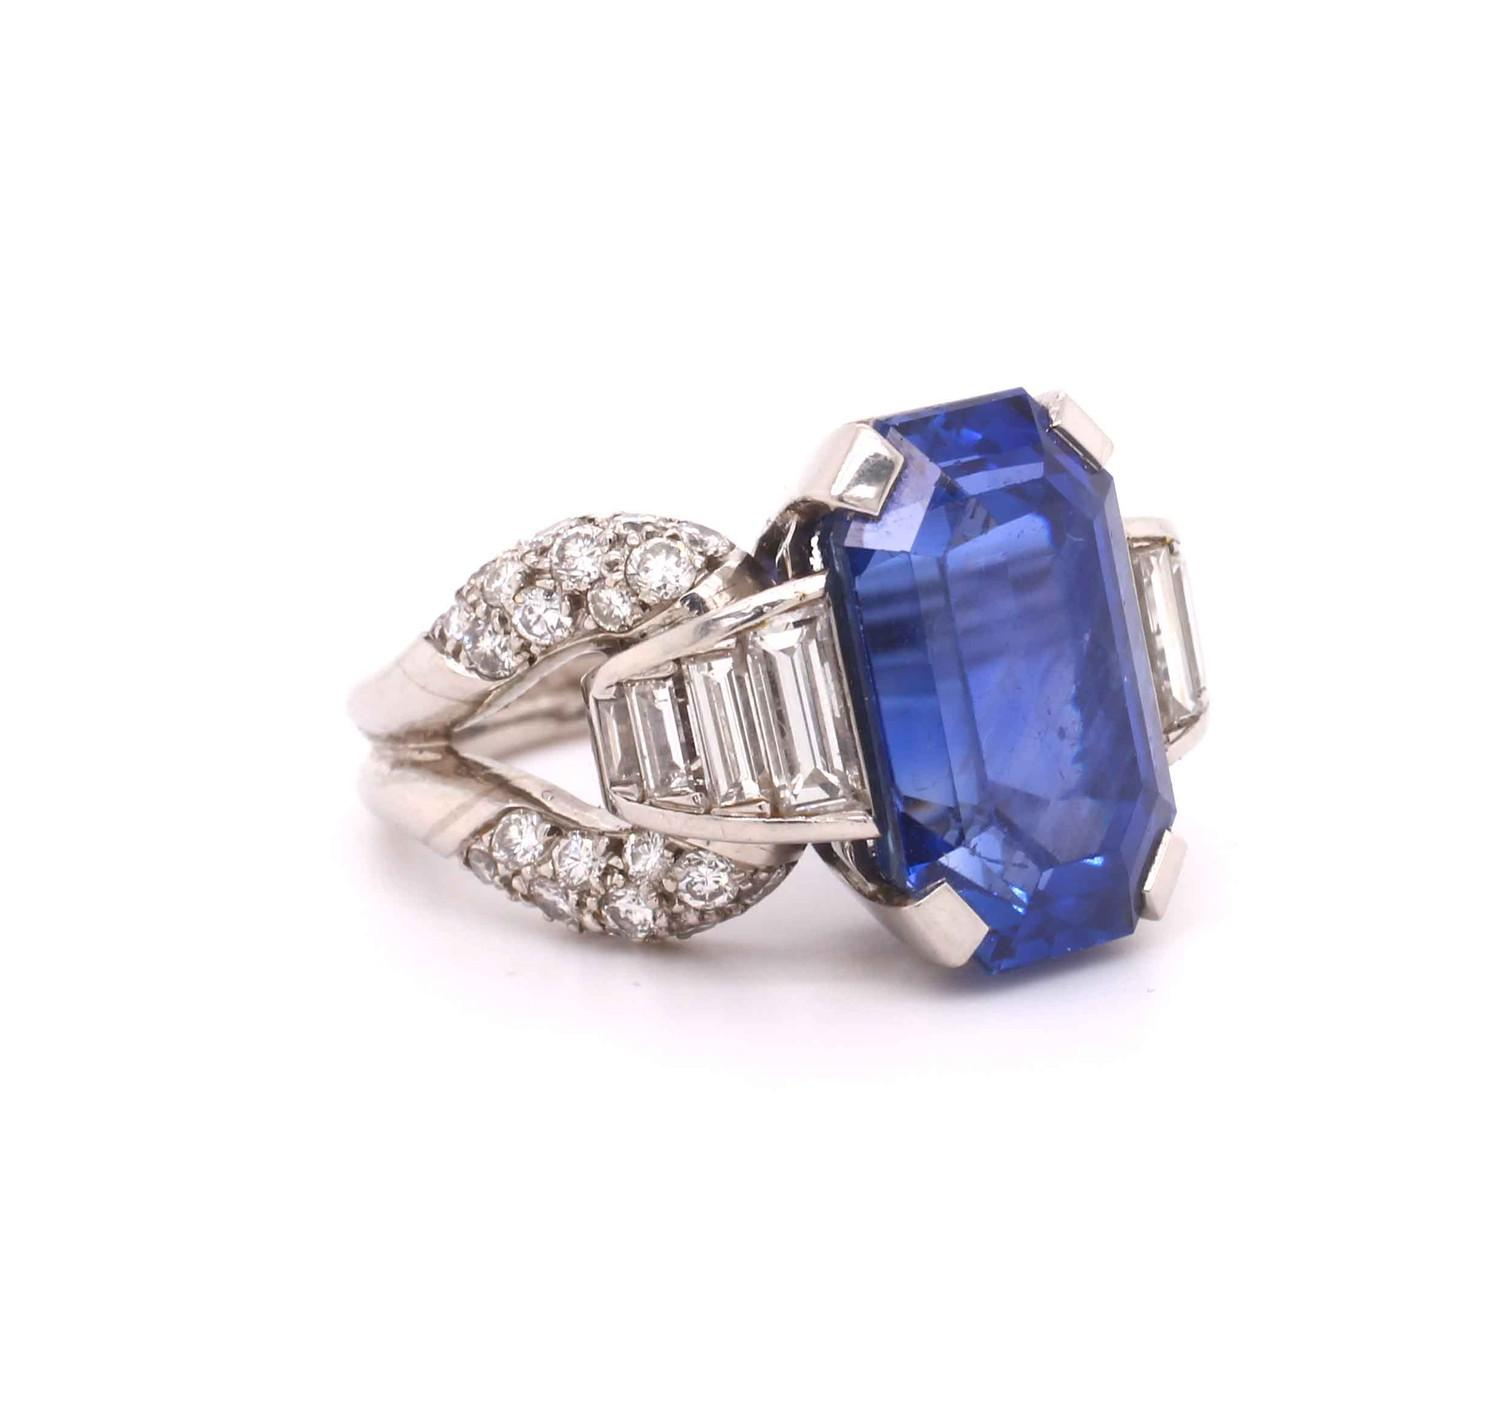 A 1950s Vintage sapphire and diamond ring mounted in platinum. French. Circa 1960. The central